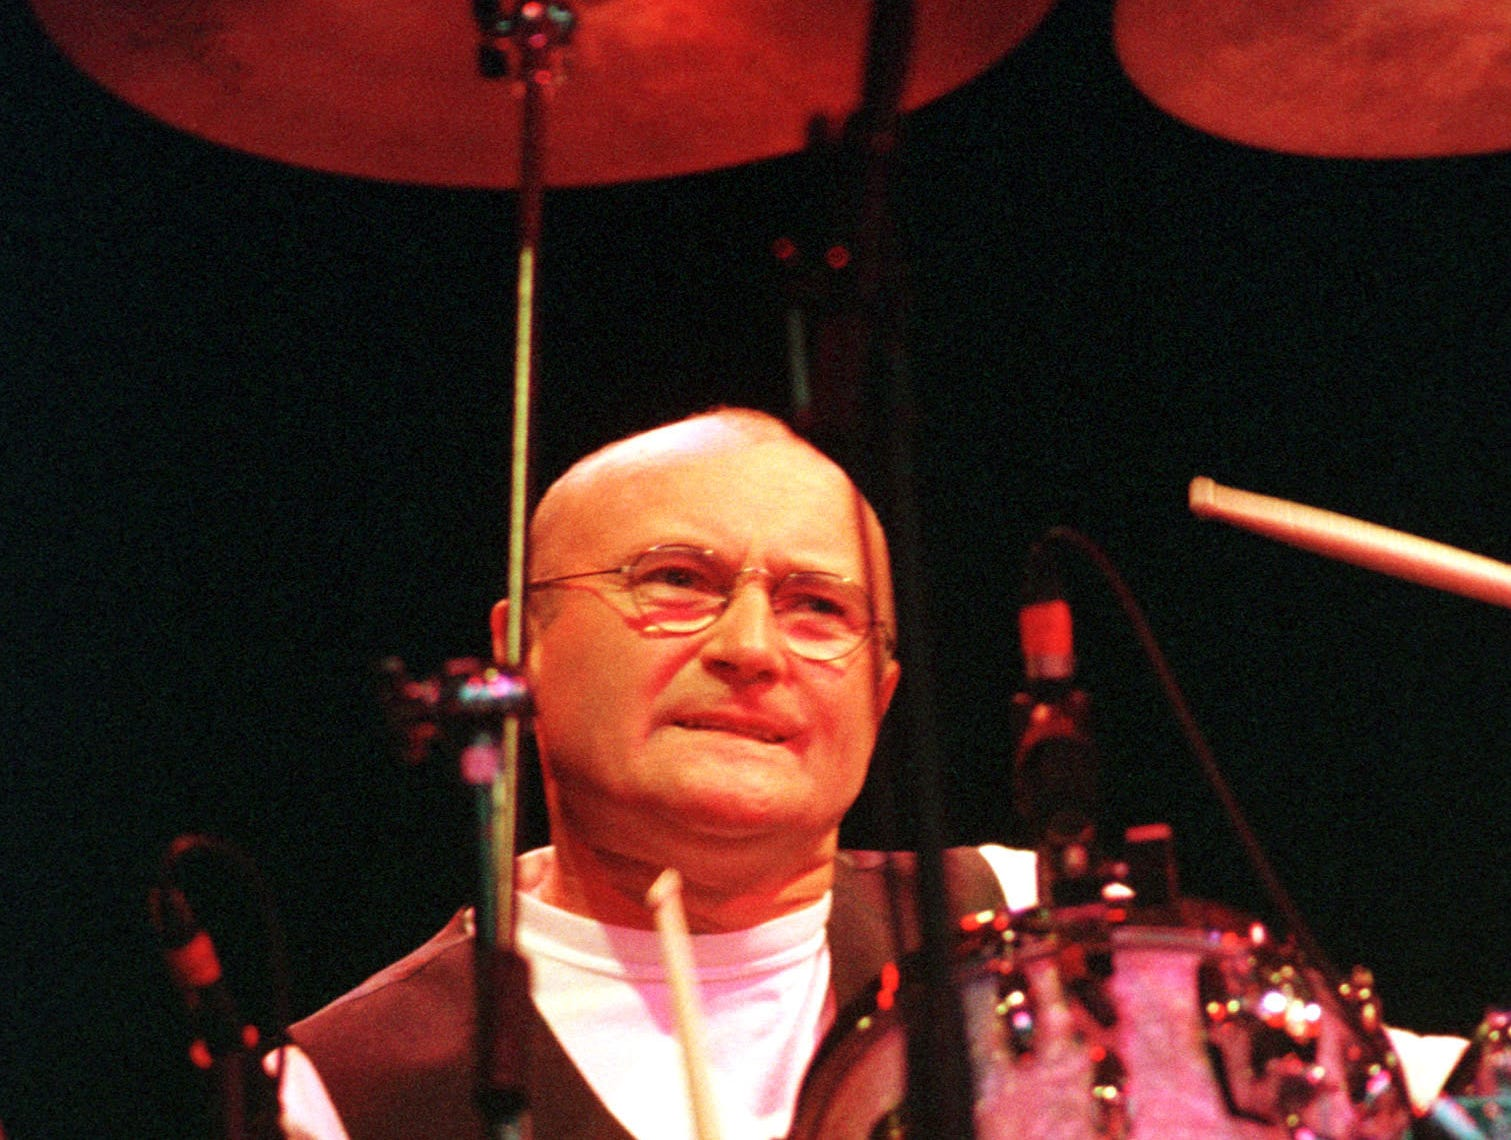 Phil Collins drums during his concert with his band Genesis in Cologne July 9, 1998. He played the old Genesis songs without singing, only playing the drums.